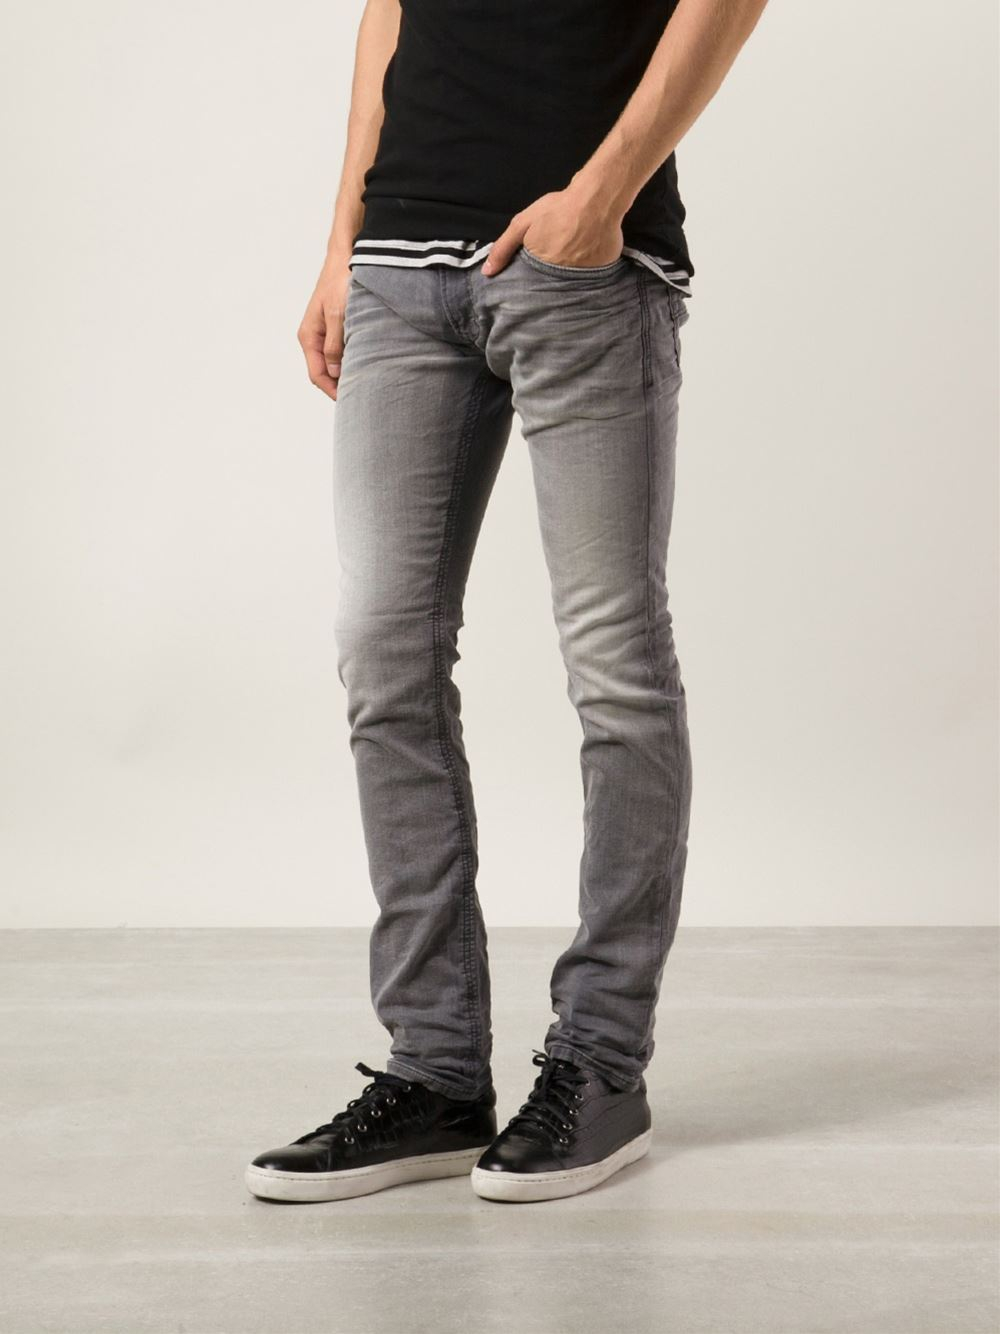 Shop for sweatpant jeans mens online at Target. Free shipping on purchases over $35 and save 5% every day with your Target REDcard.